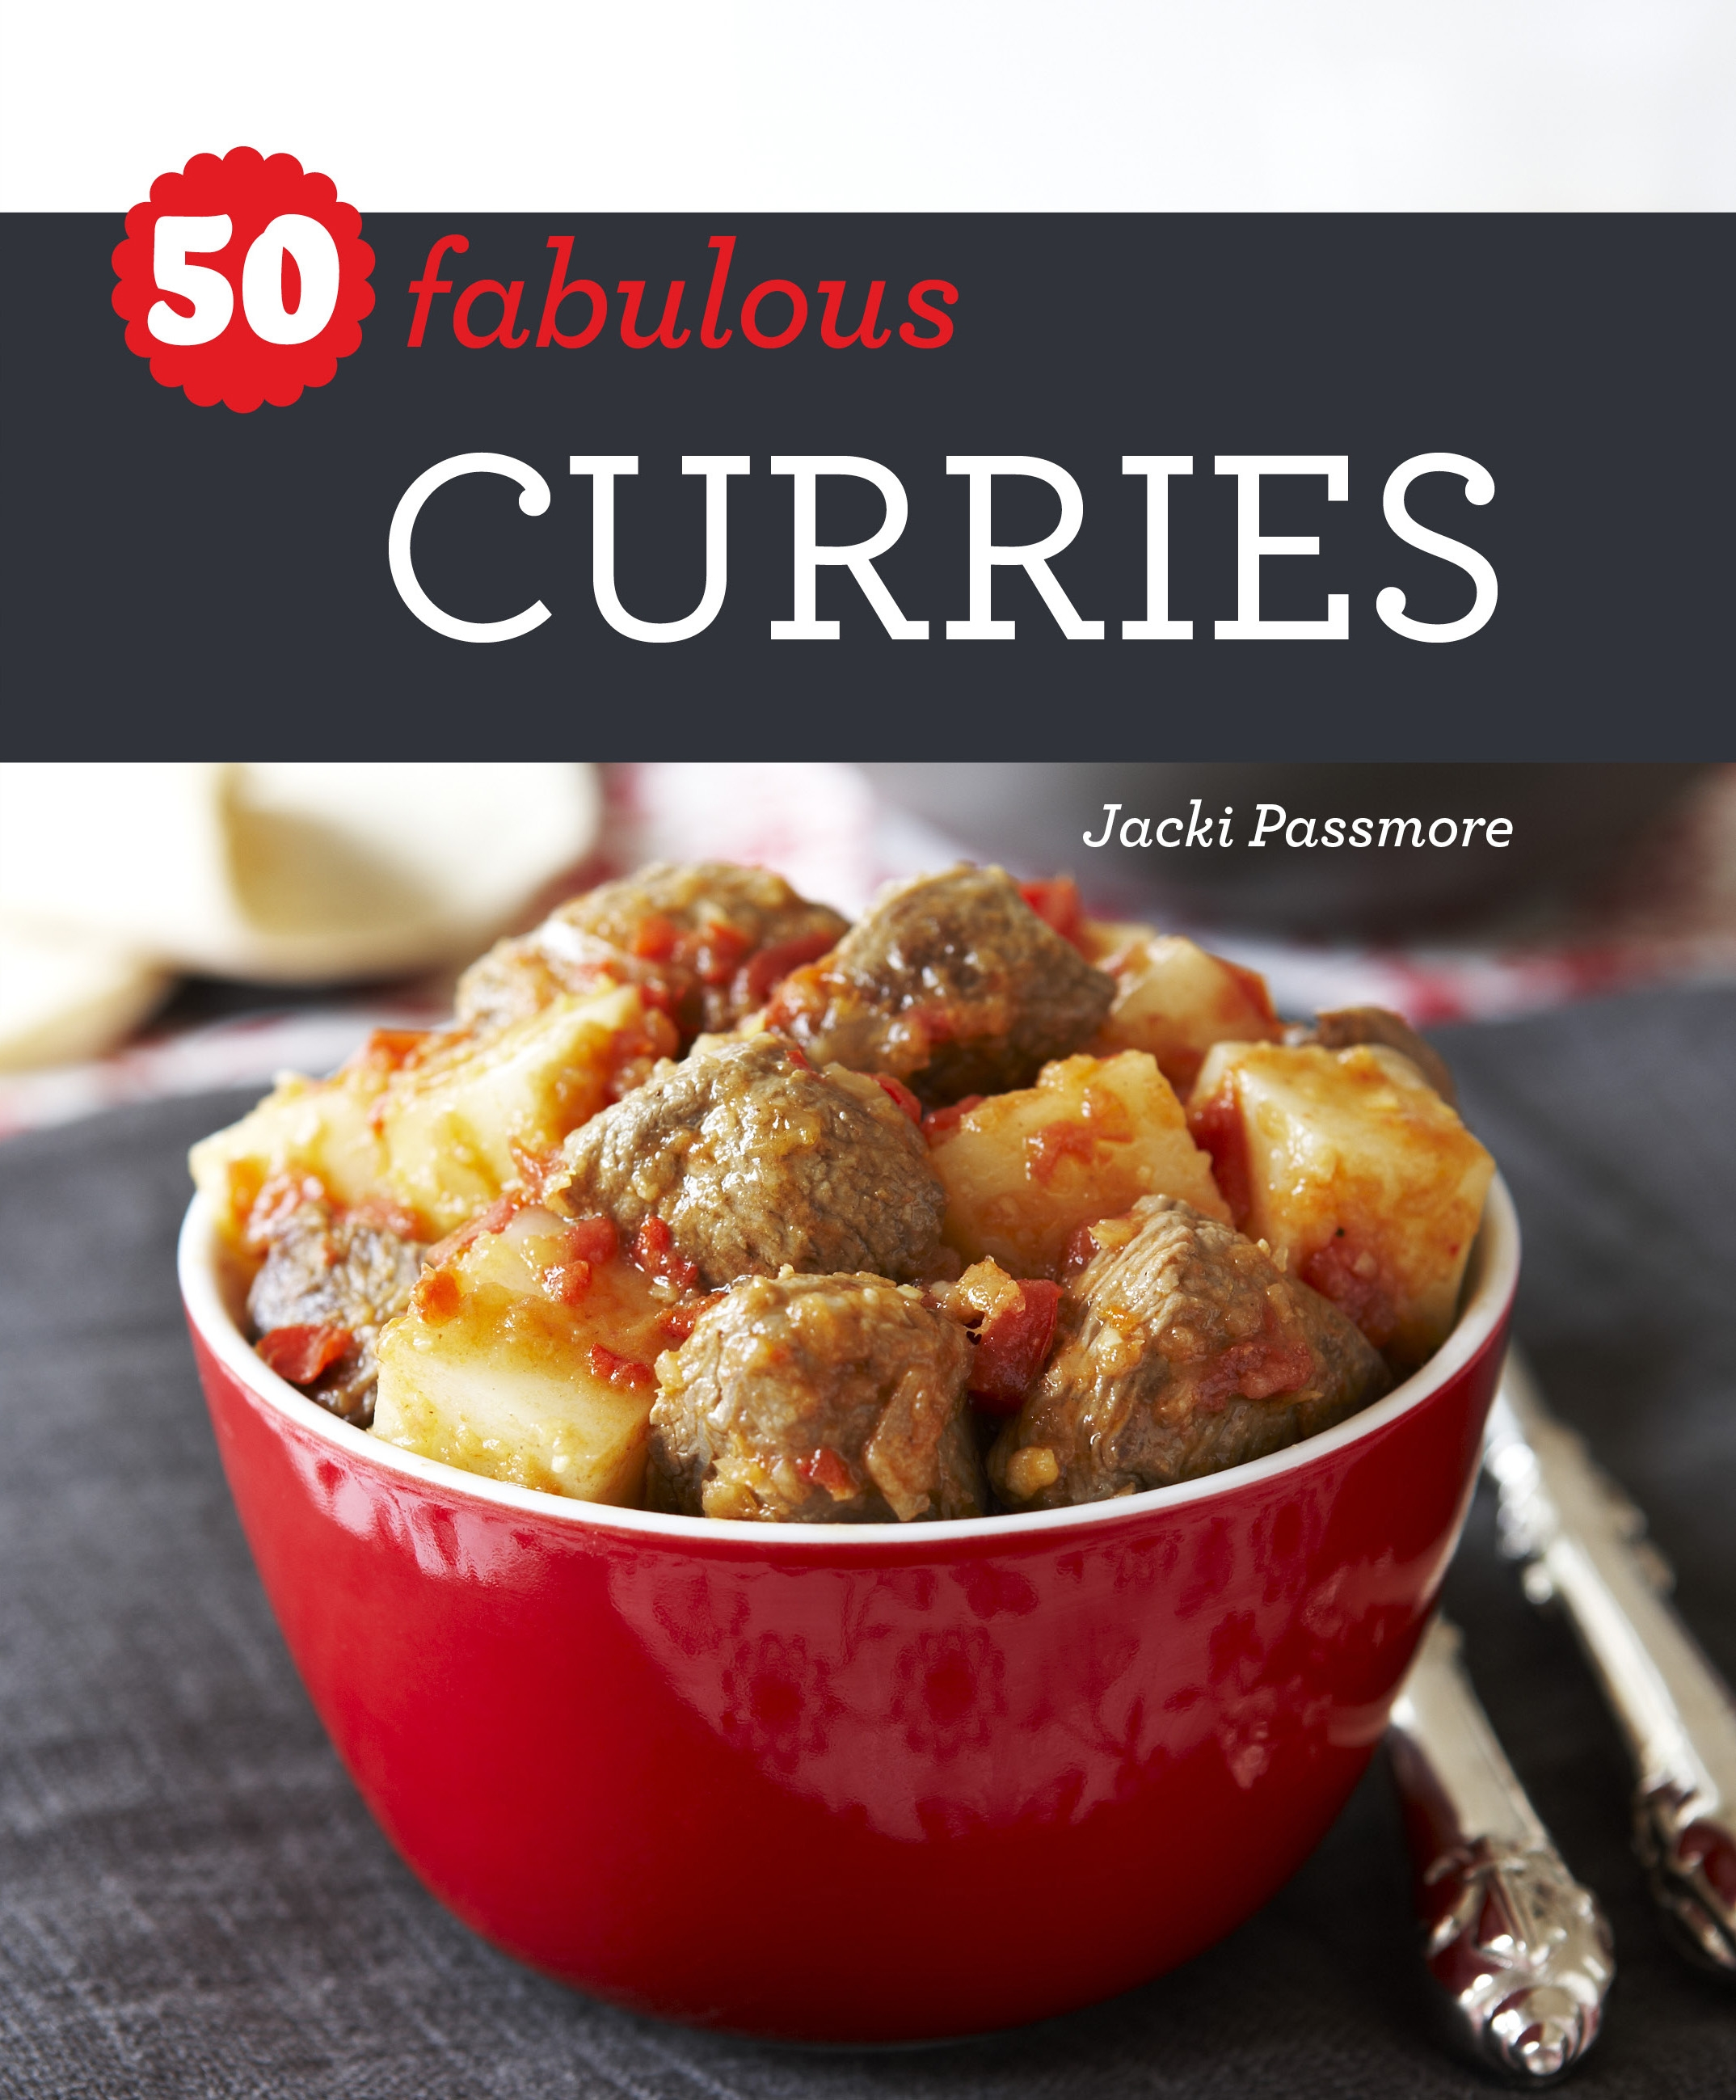 50 Fabulous Curries